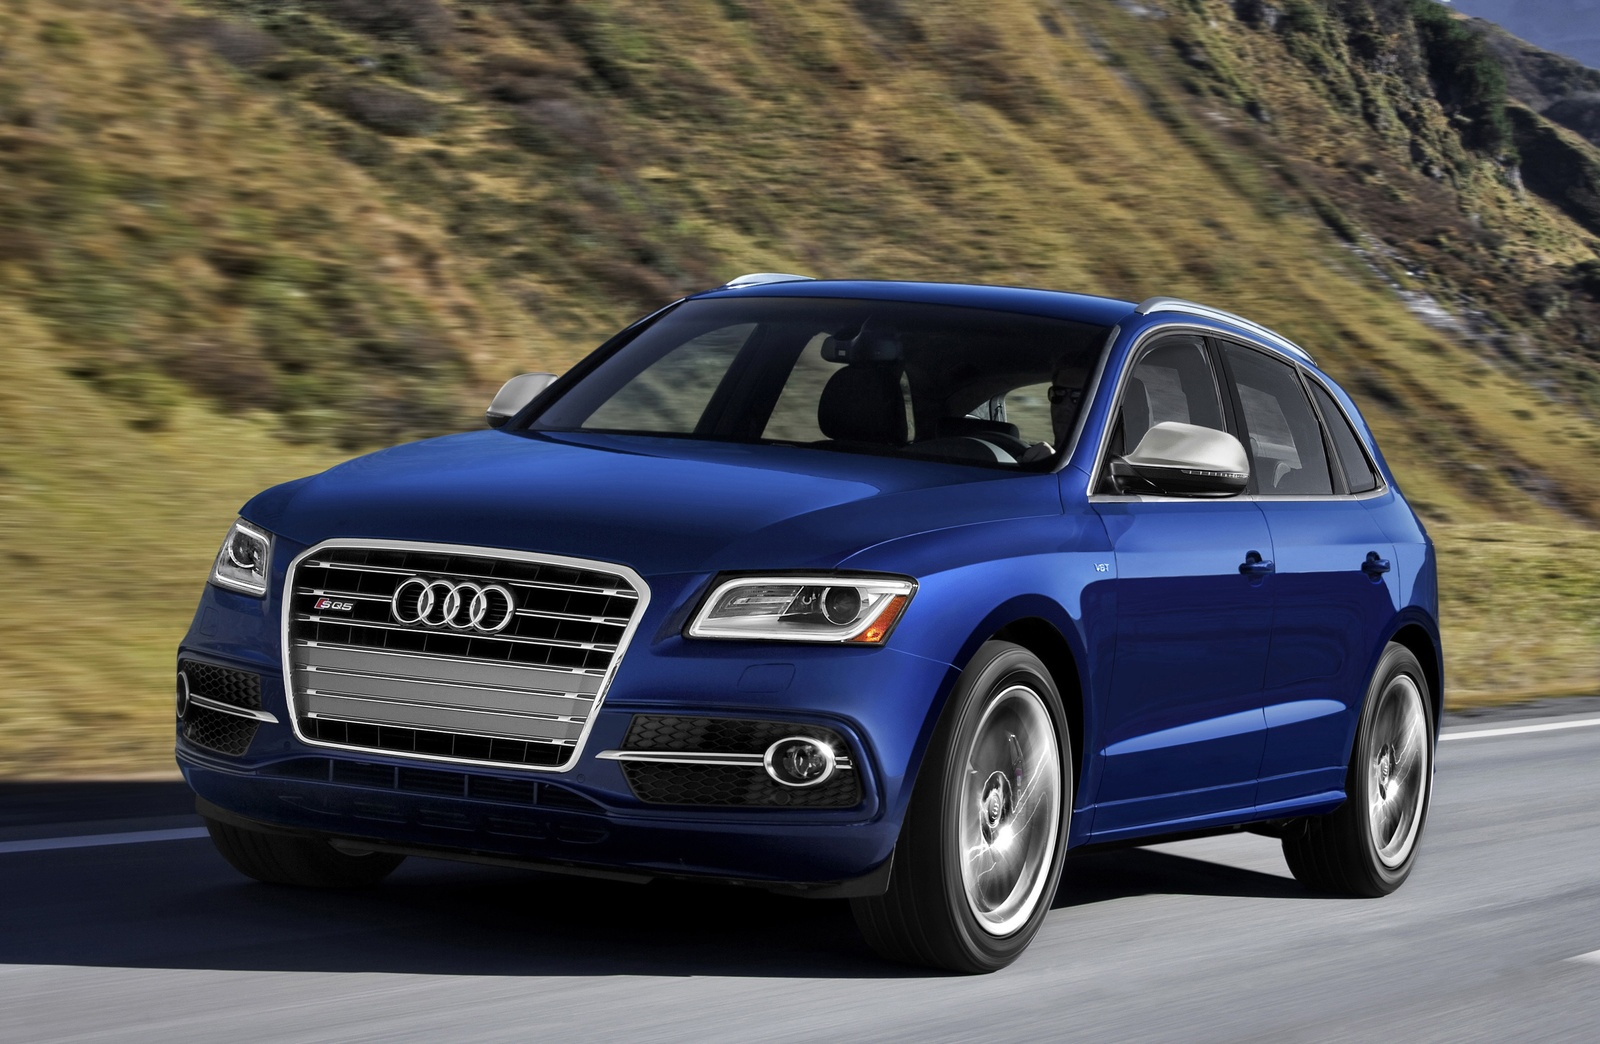 2016 Audi SQ5 - Review - CarGurus